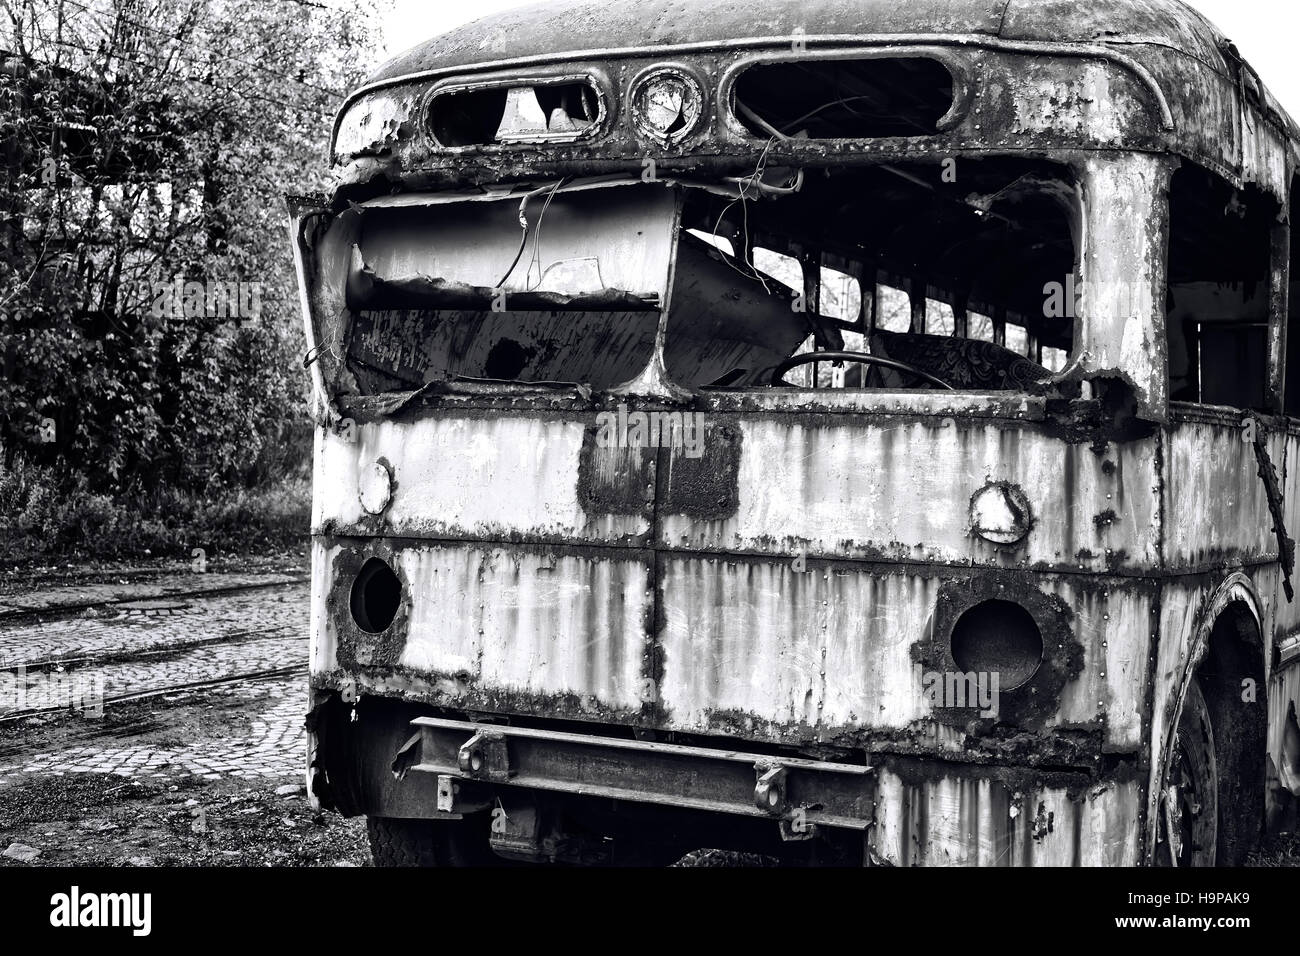 Old abandoned bus wreck. Black and white photo - Stock Image